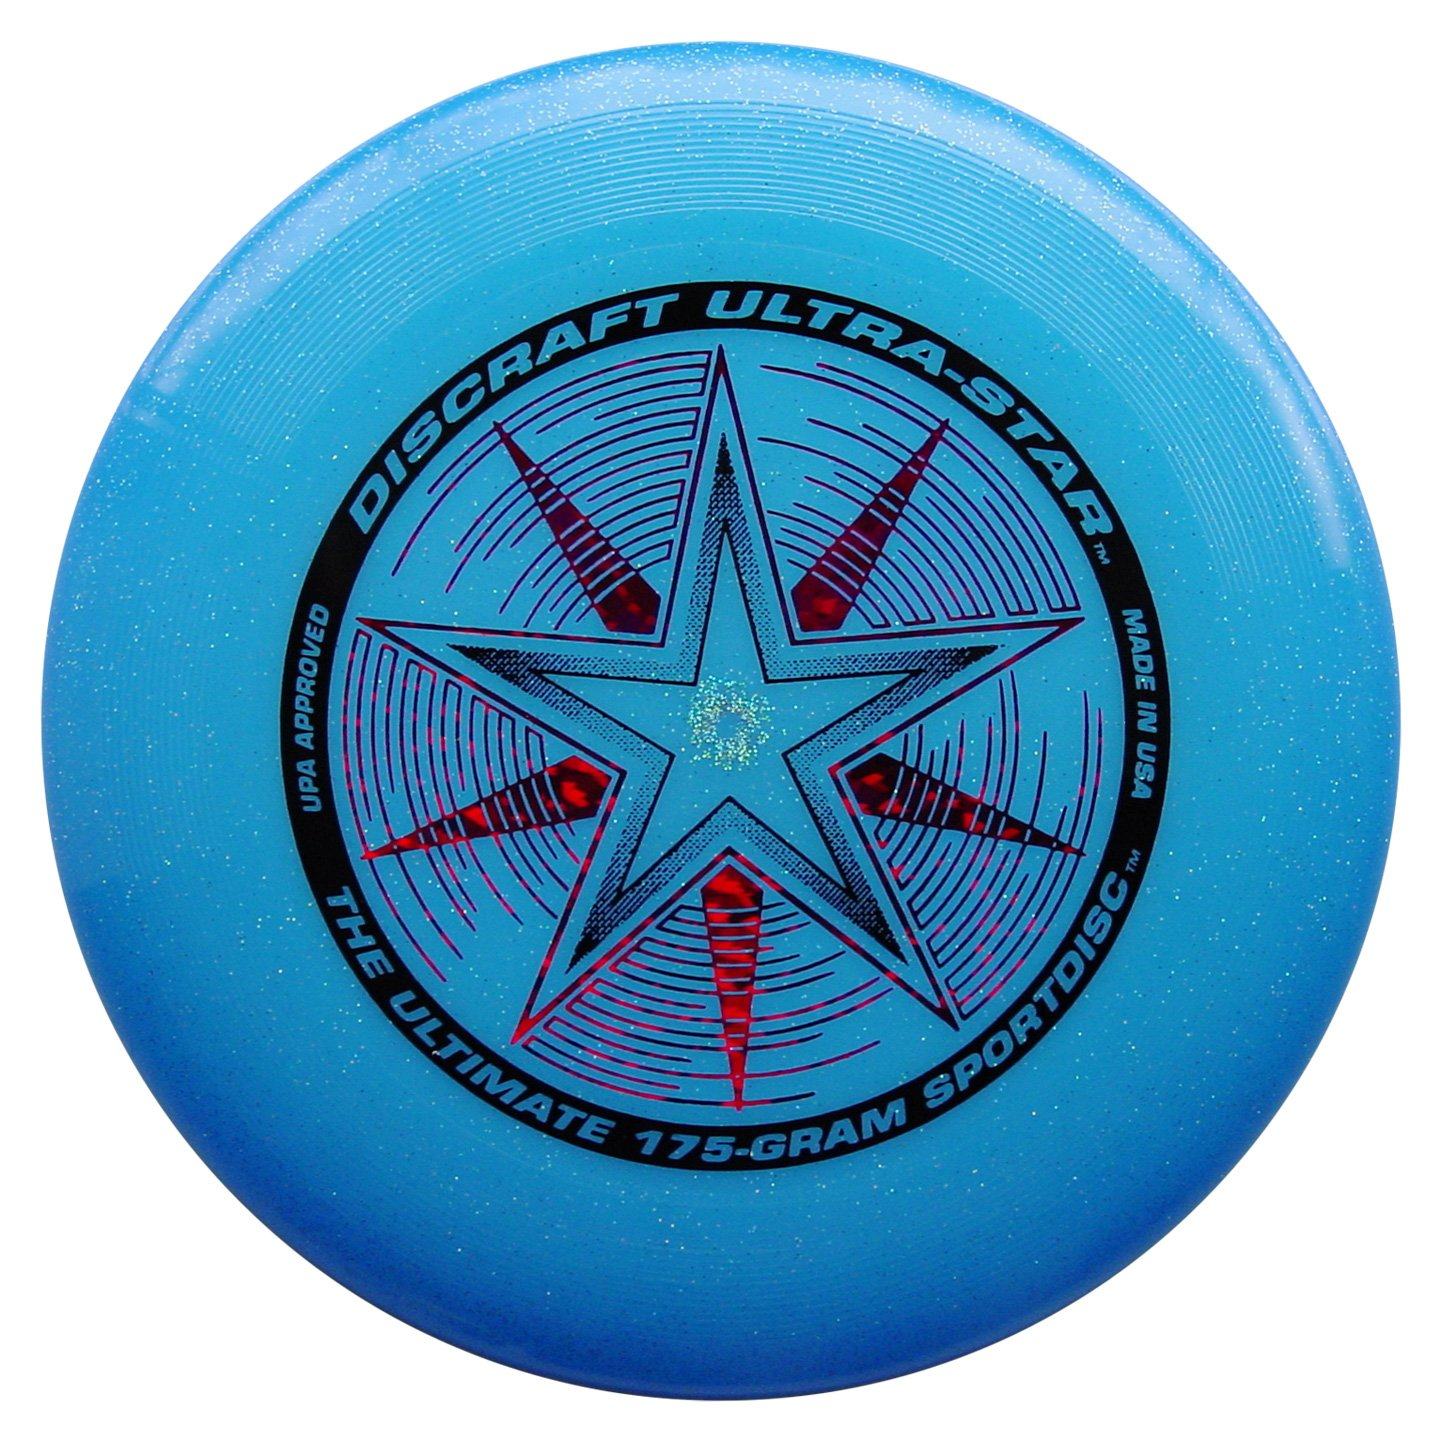 Frisbee Profesional Discraft 175 gr/27cm Blue Sparkle Deluxe